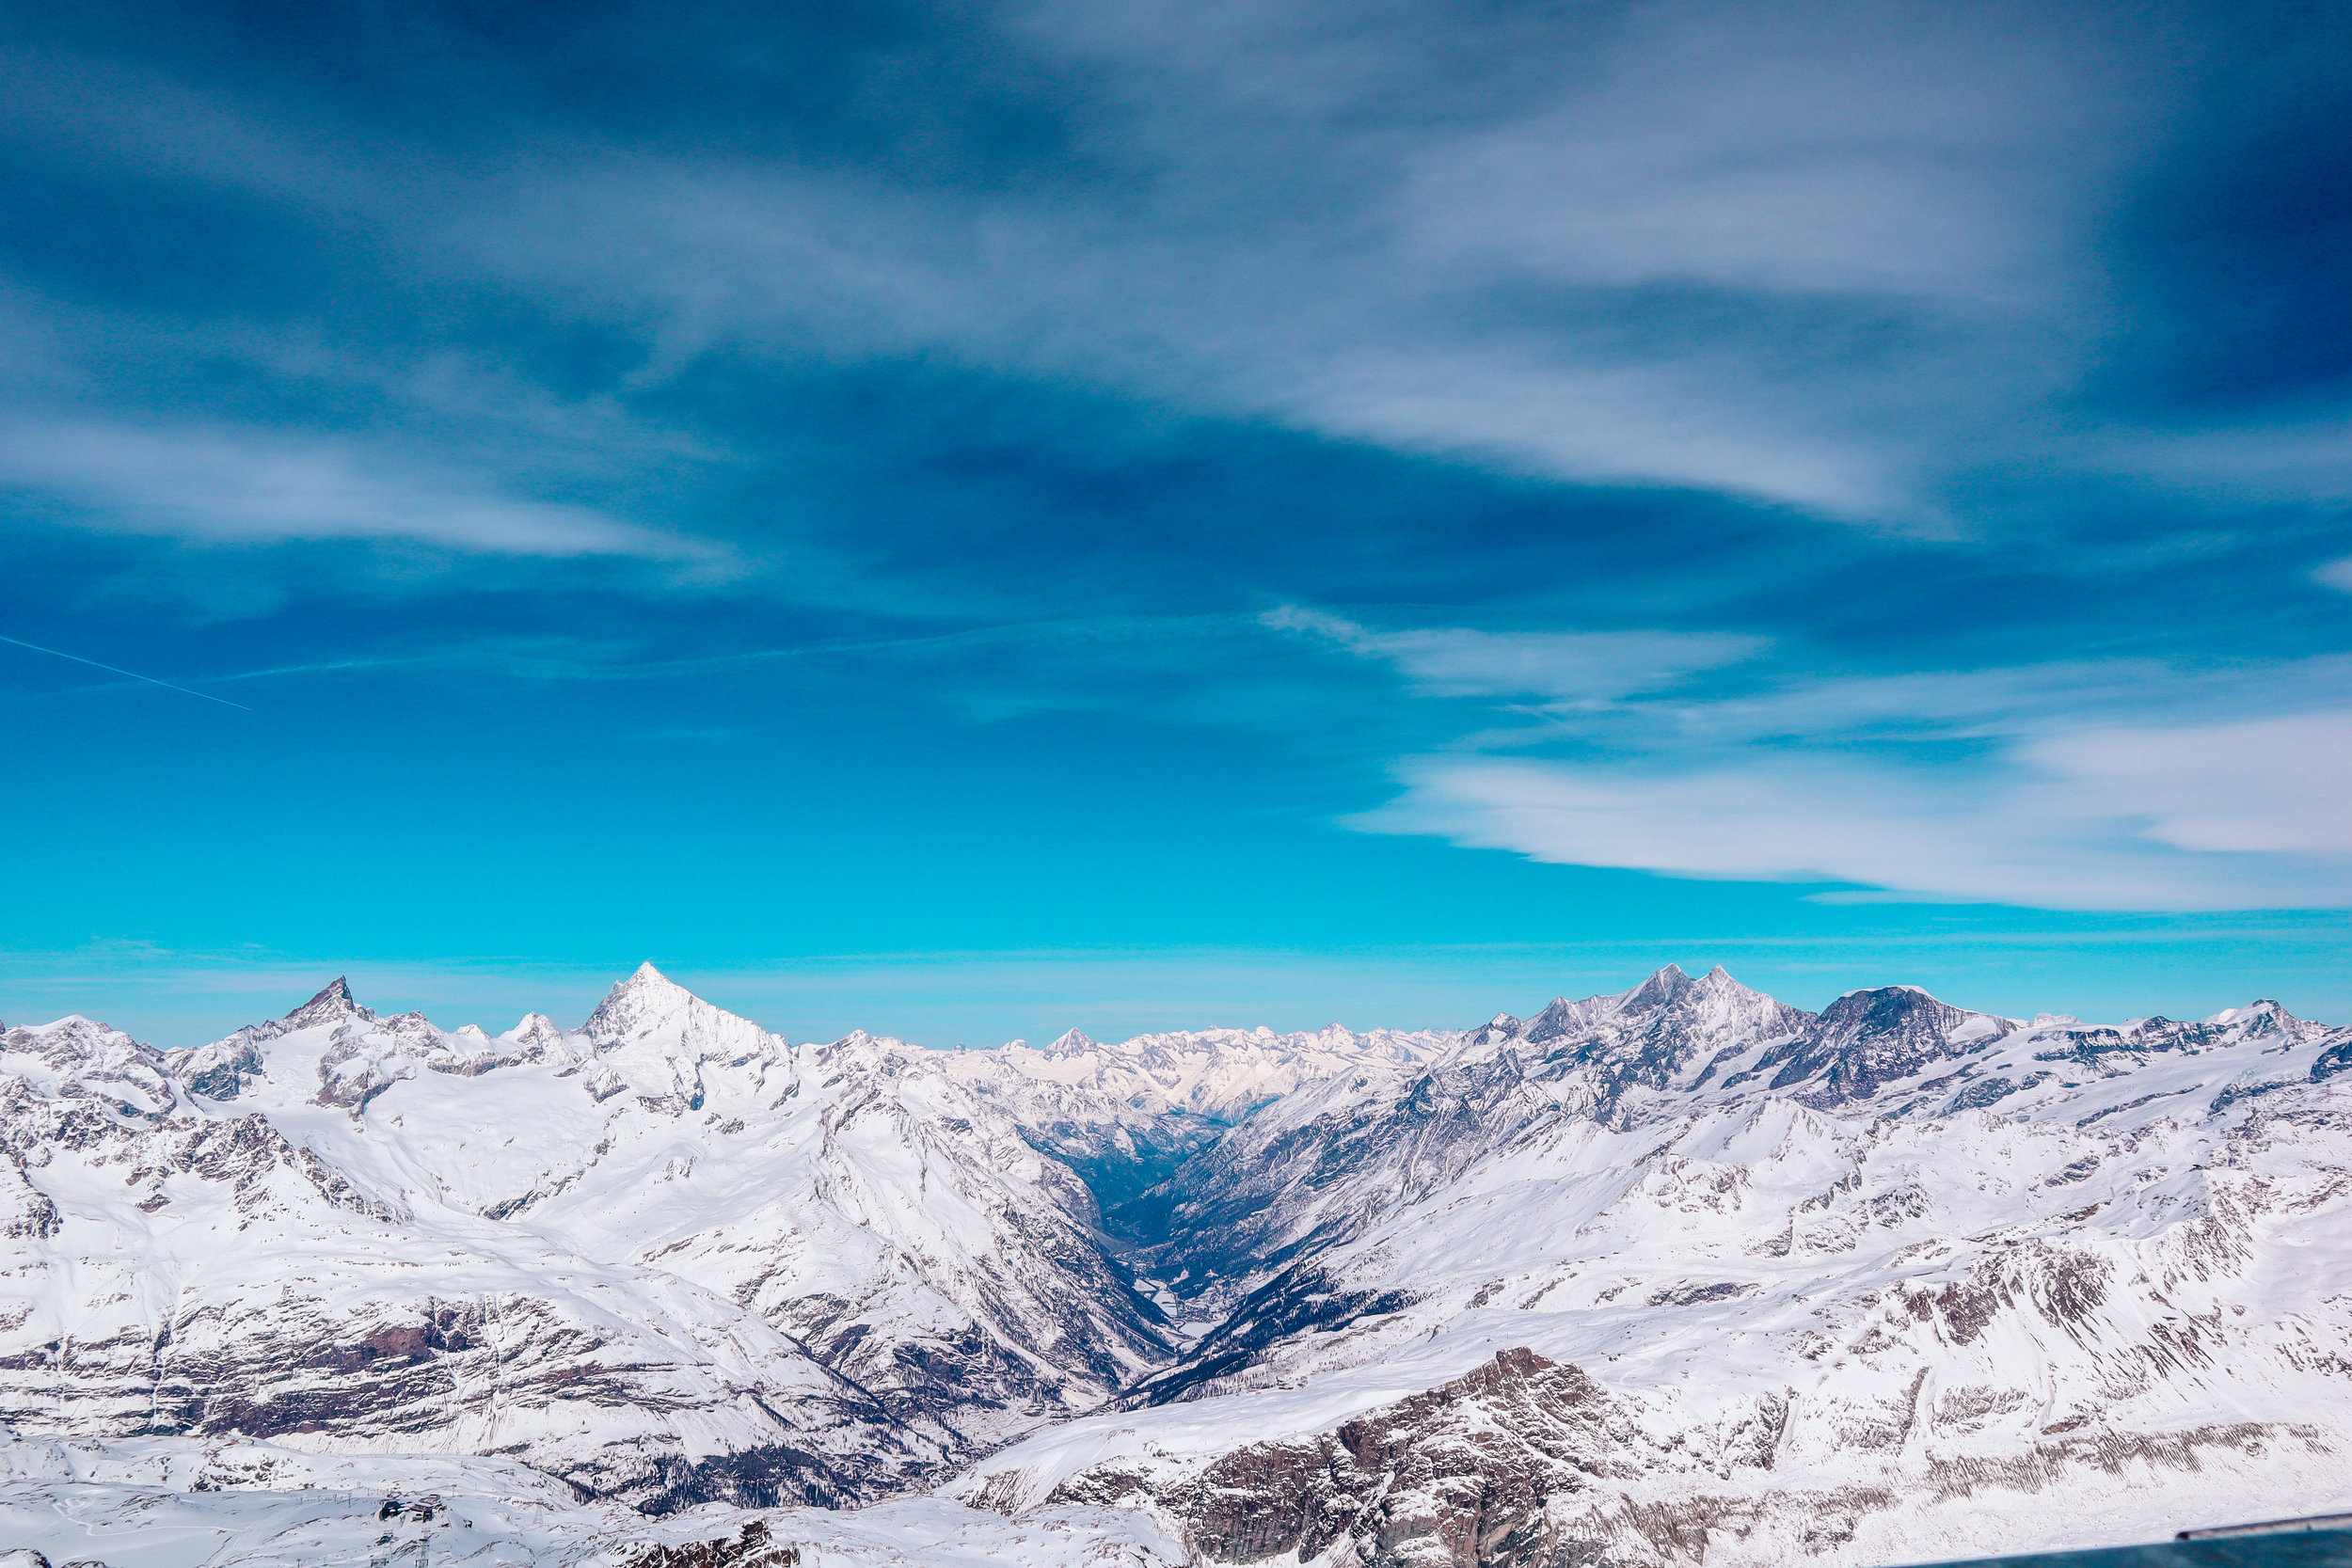 Views from our excursion to the top of the Matterhorn